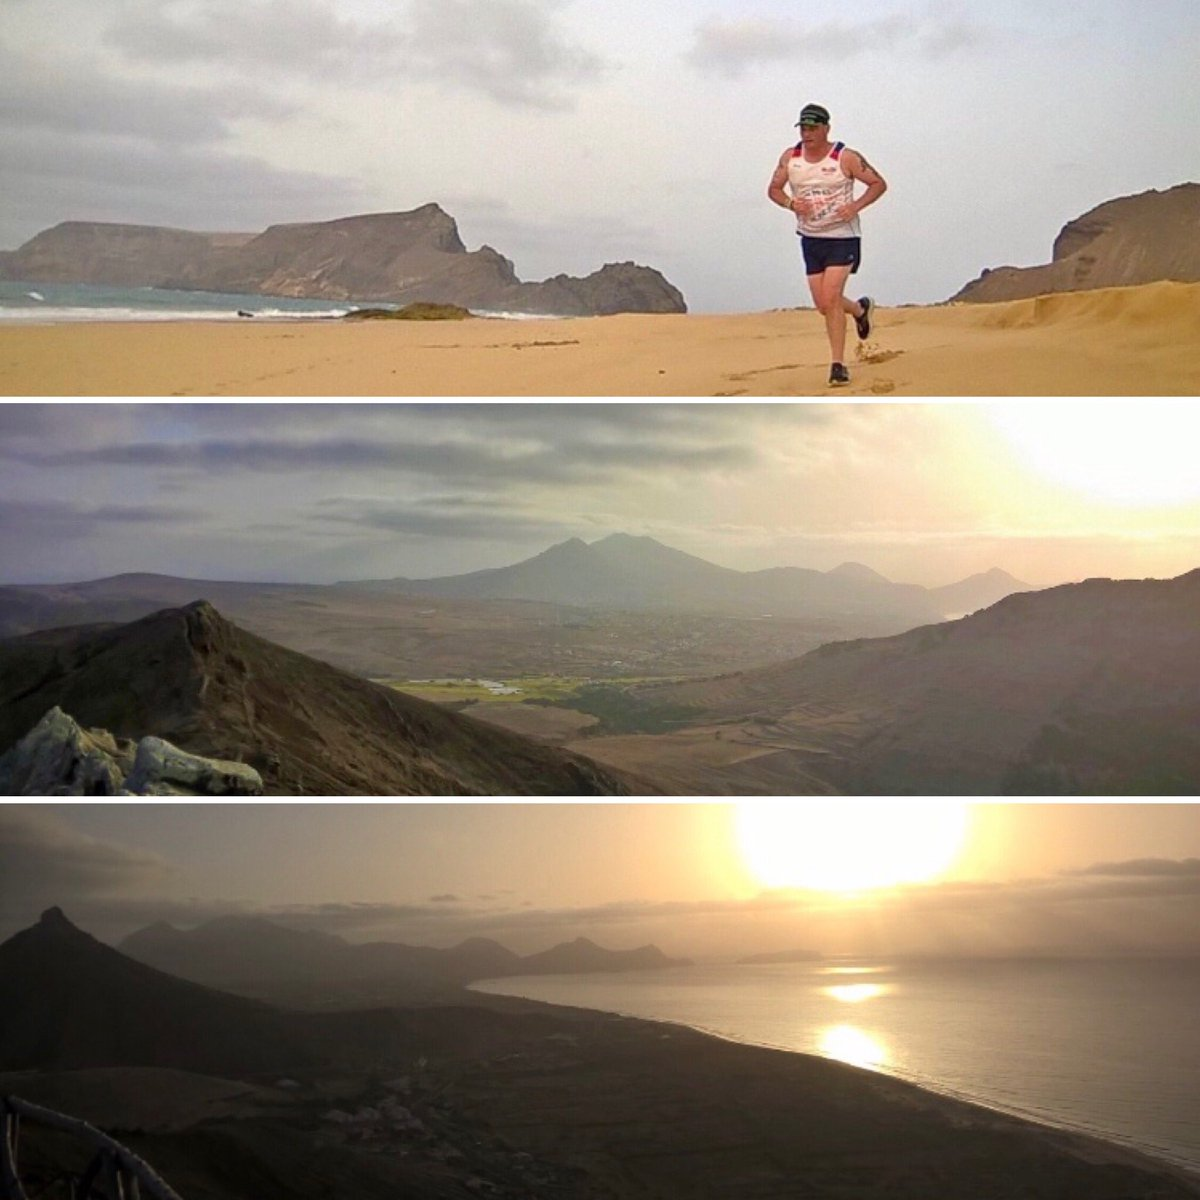 @Ella_Davies1 @UKRunChat @Compressport_UK Loved running on the island of Porto Santo when I was on holiday there. Really want to go back #ukrunchat https://t.co/y38bEFHjva